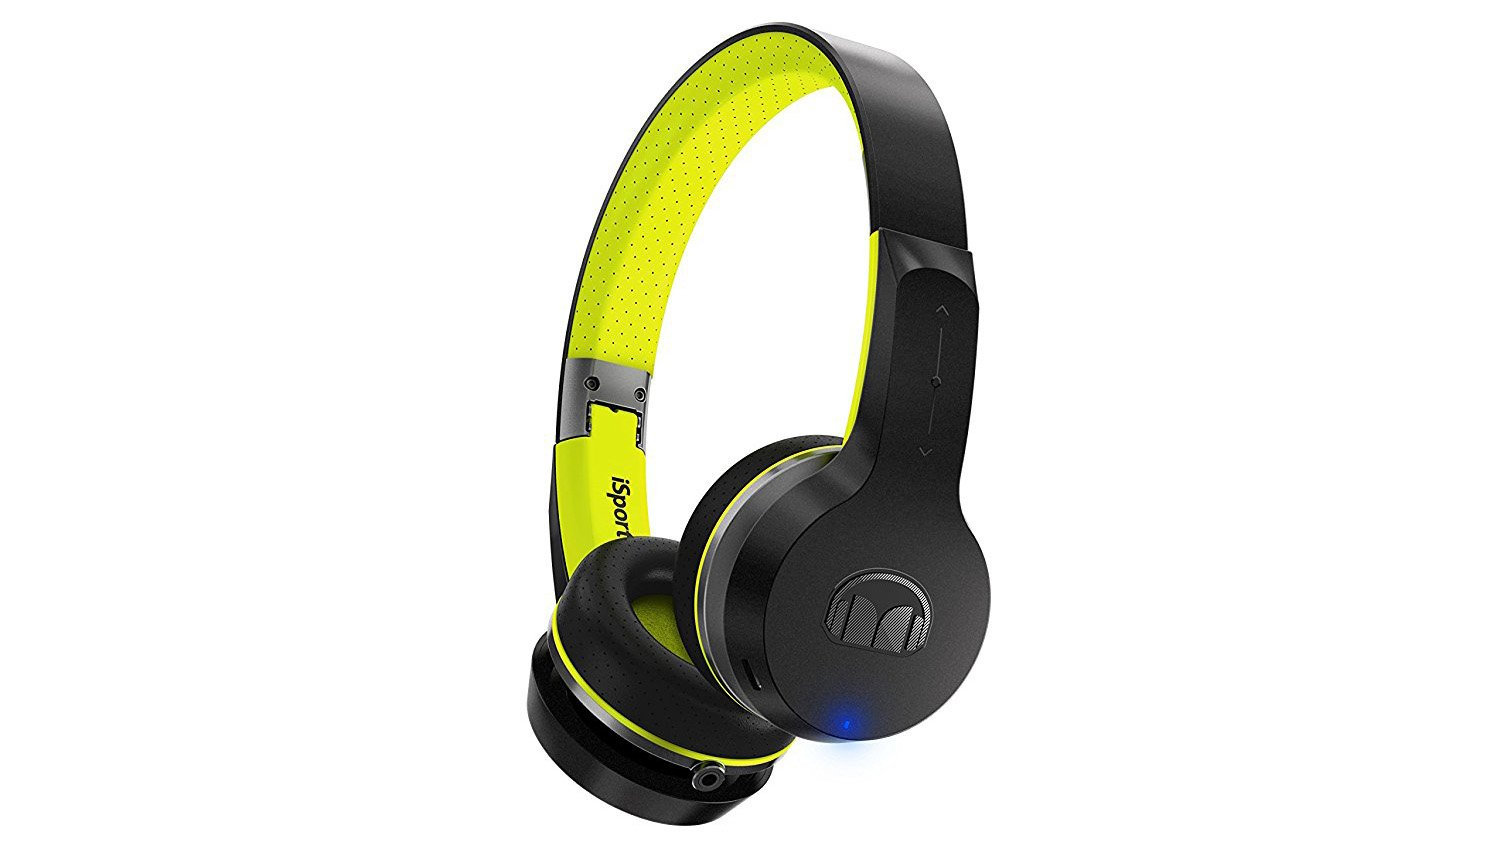 1d55593d231 On-ear running headphones give a more expansive sound than earbuds, and  their larger bodies can accommodate a bigger battery. The Monster iSport  Freedom 2 ...